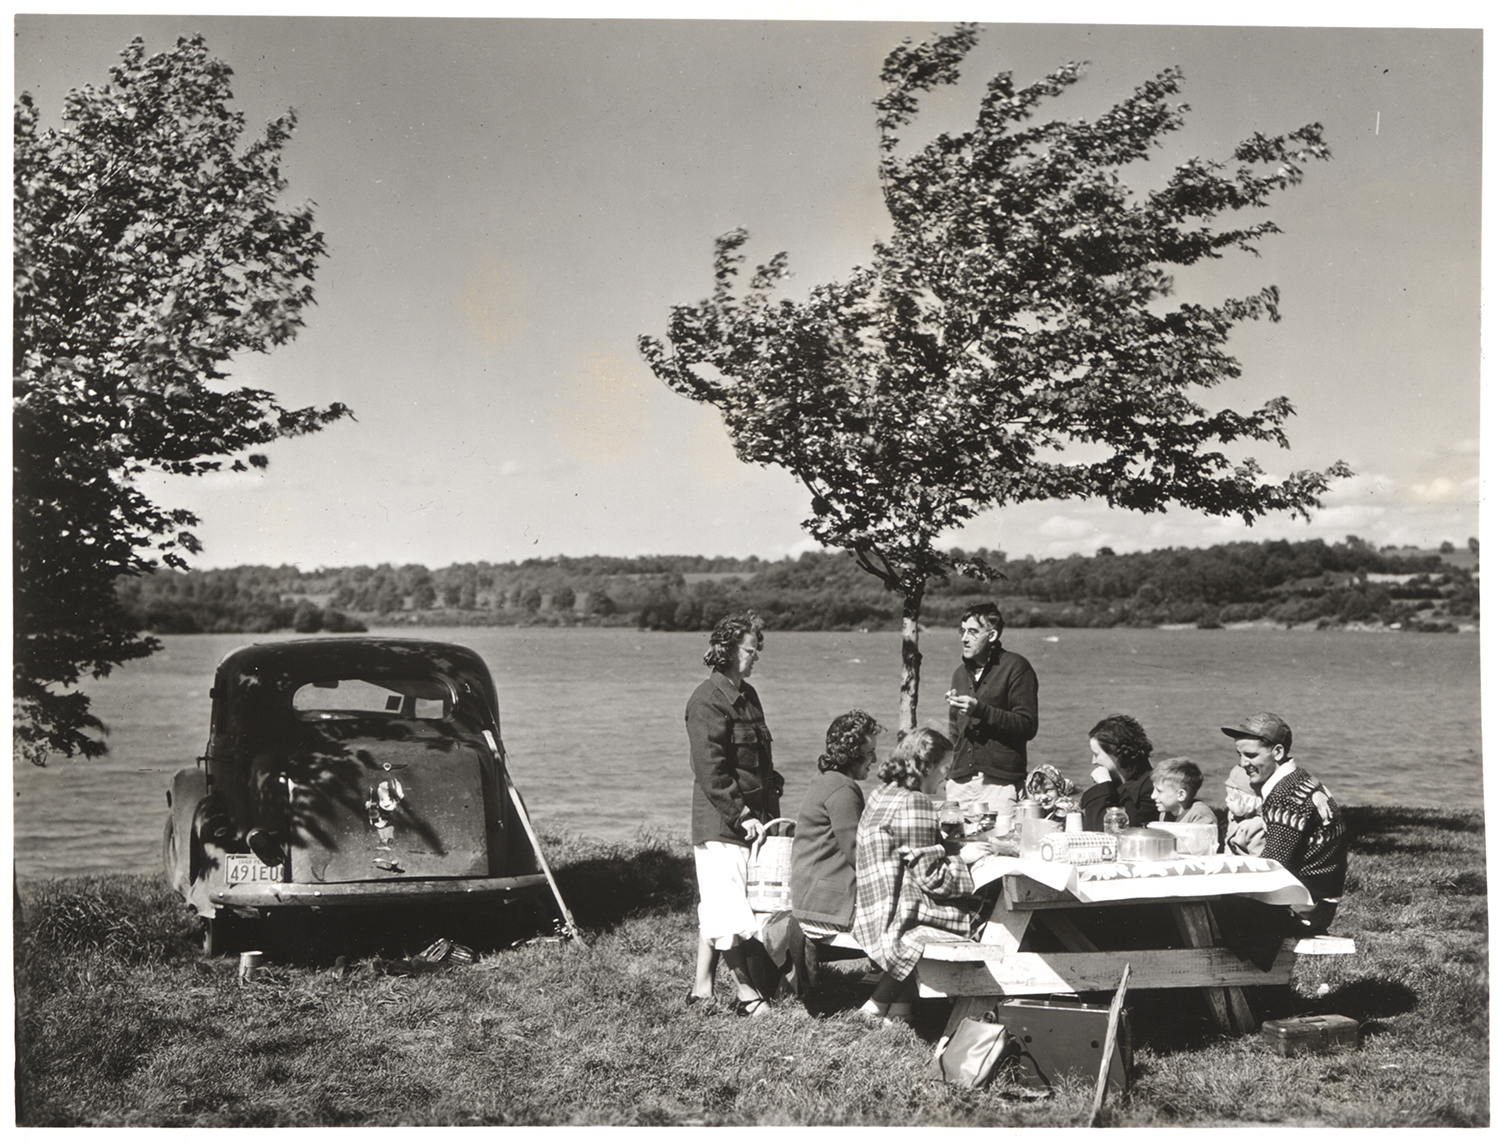 Picnickers enjoy a chilly feast by Pymatuning Reservoir Lake, 1950s. Allegheny Conference on Community Development collection, MSP 285, Detre Library & Archives, Heinz History Center.